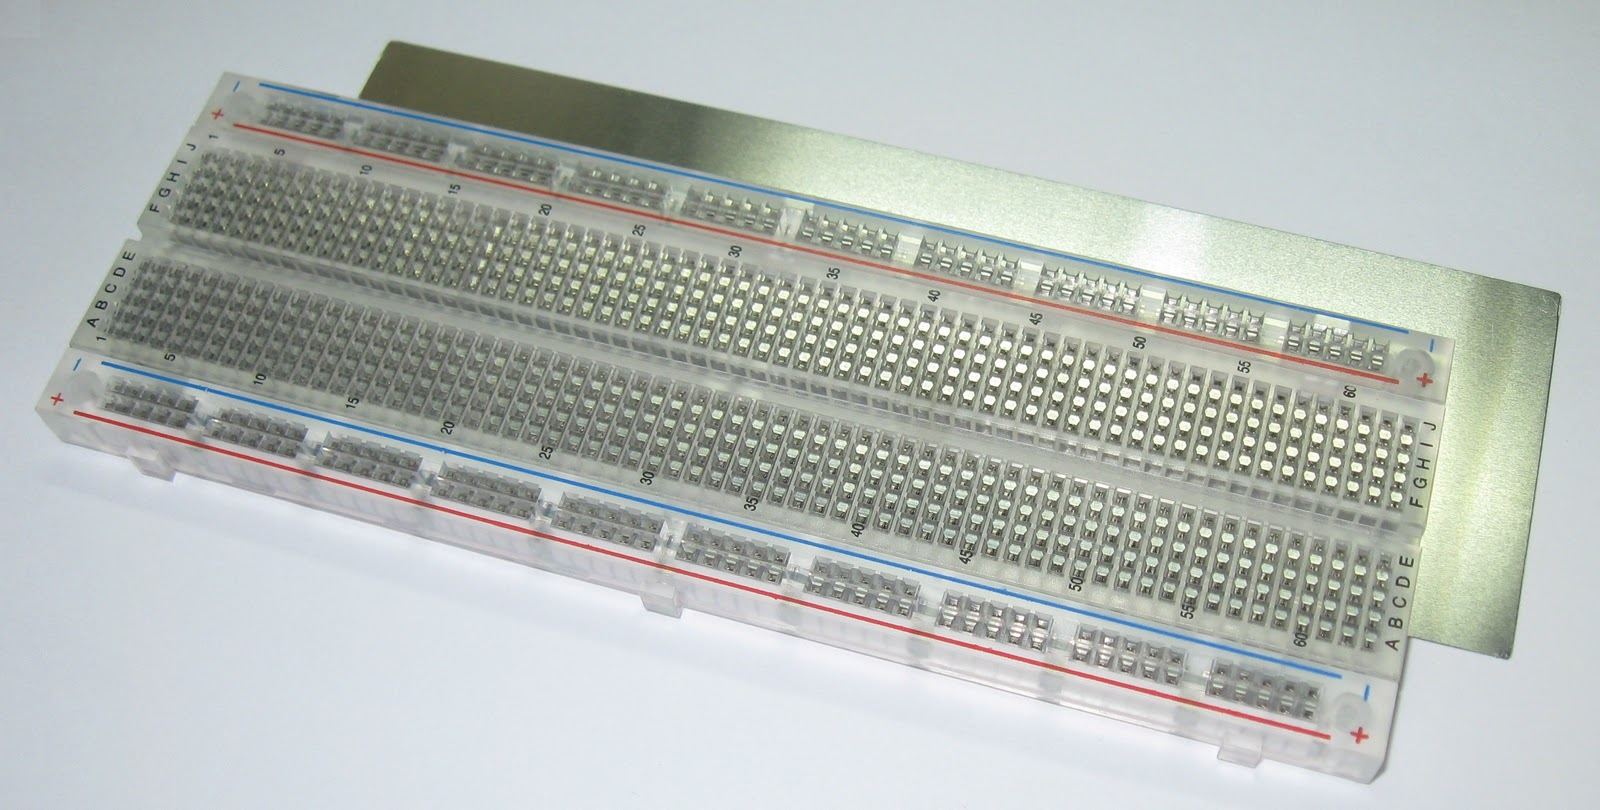 Scot Kornaks Protoblog Introducing Solderable Pc Breadboards Electronics Images Bps Solderless